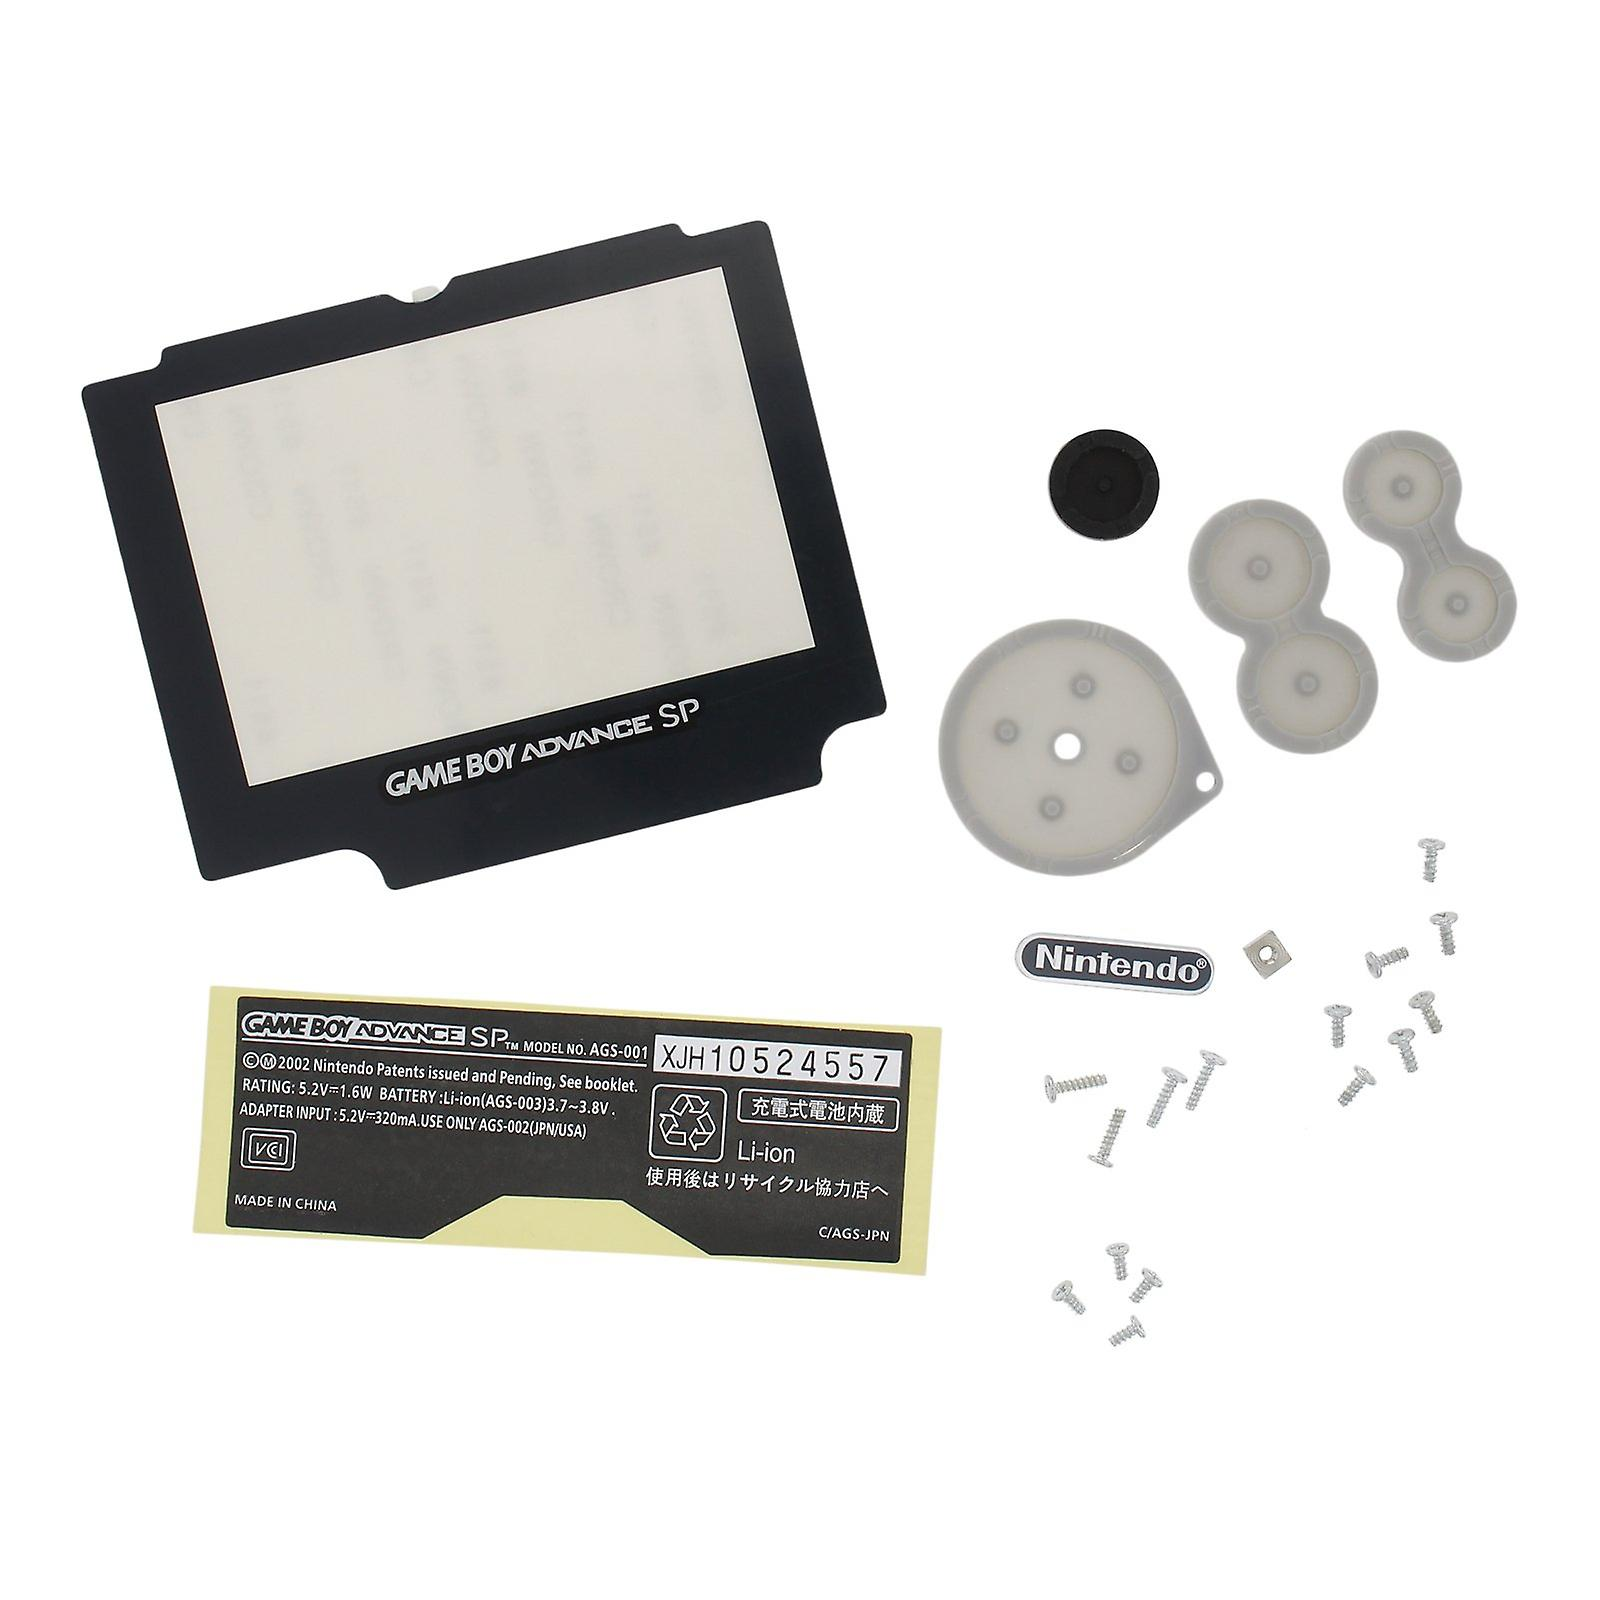 Replacement housing shell kit for nintendo game boy advance sp donkey kong edition - pearl blue